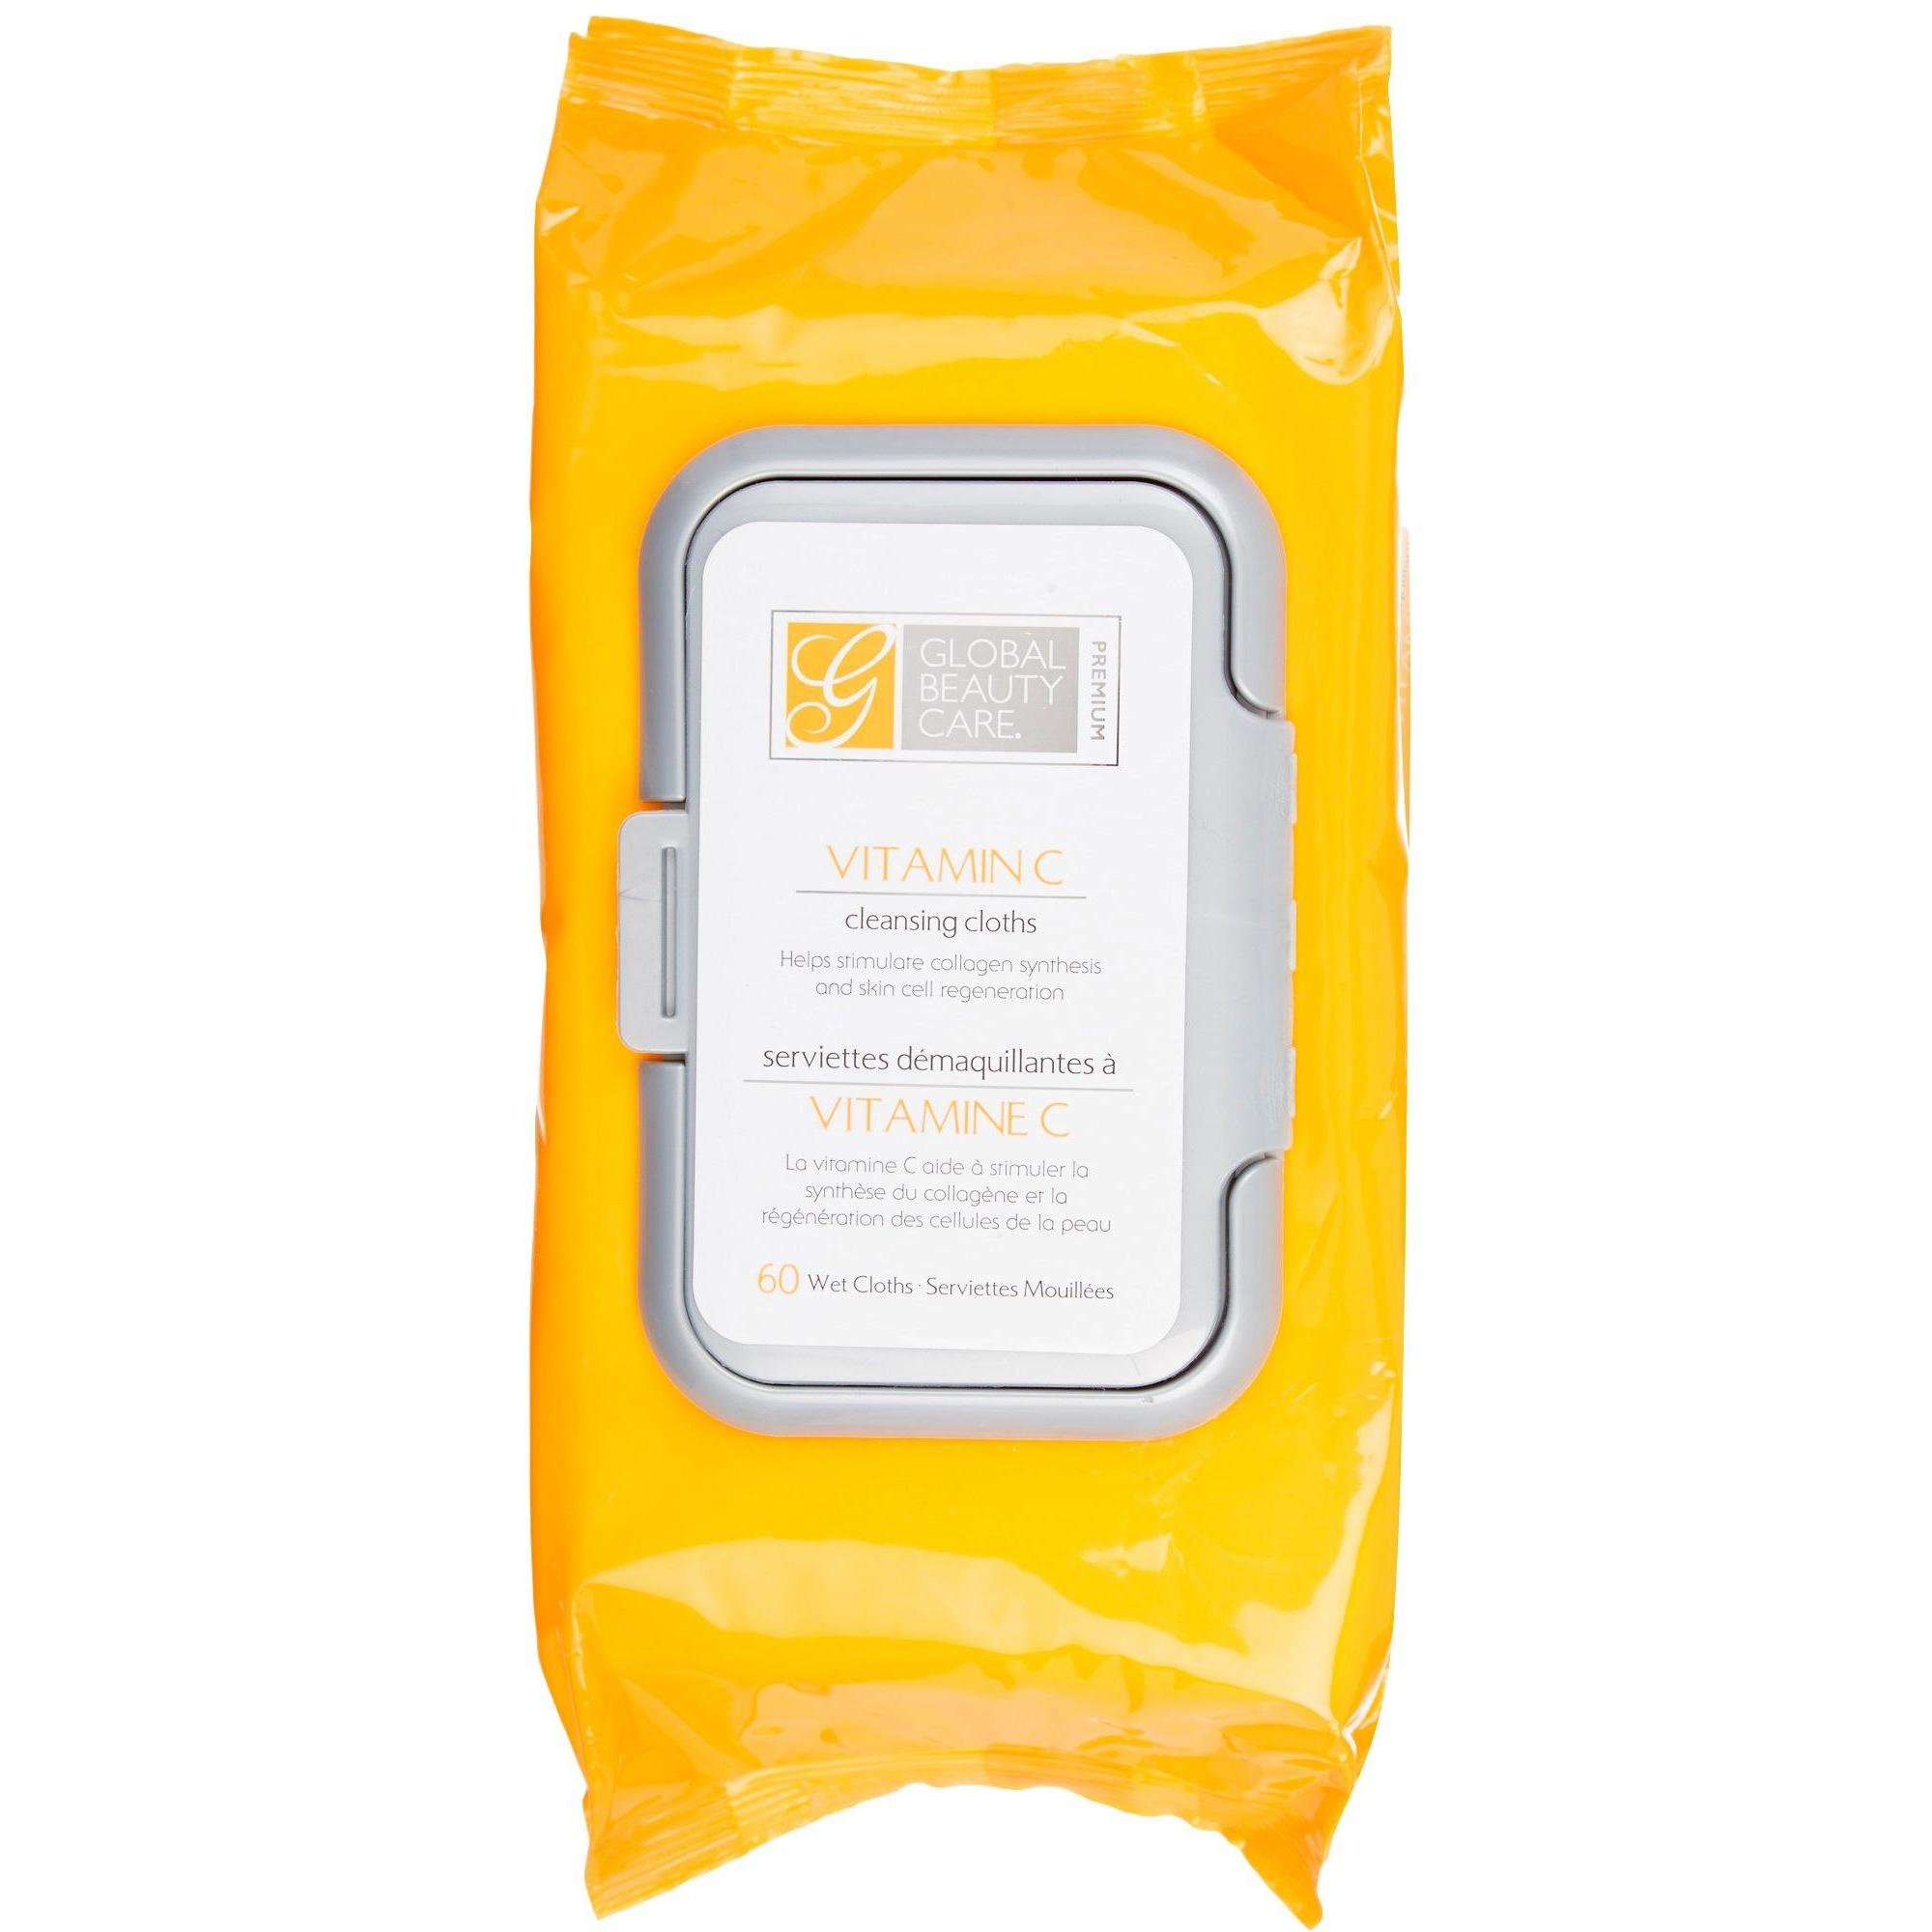 Global - Beauty Care Premium Vitamin C Cloths